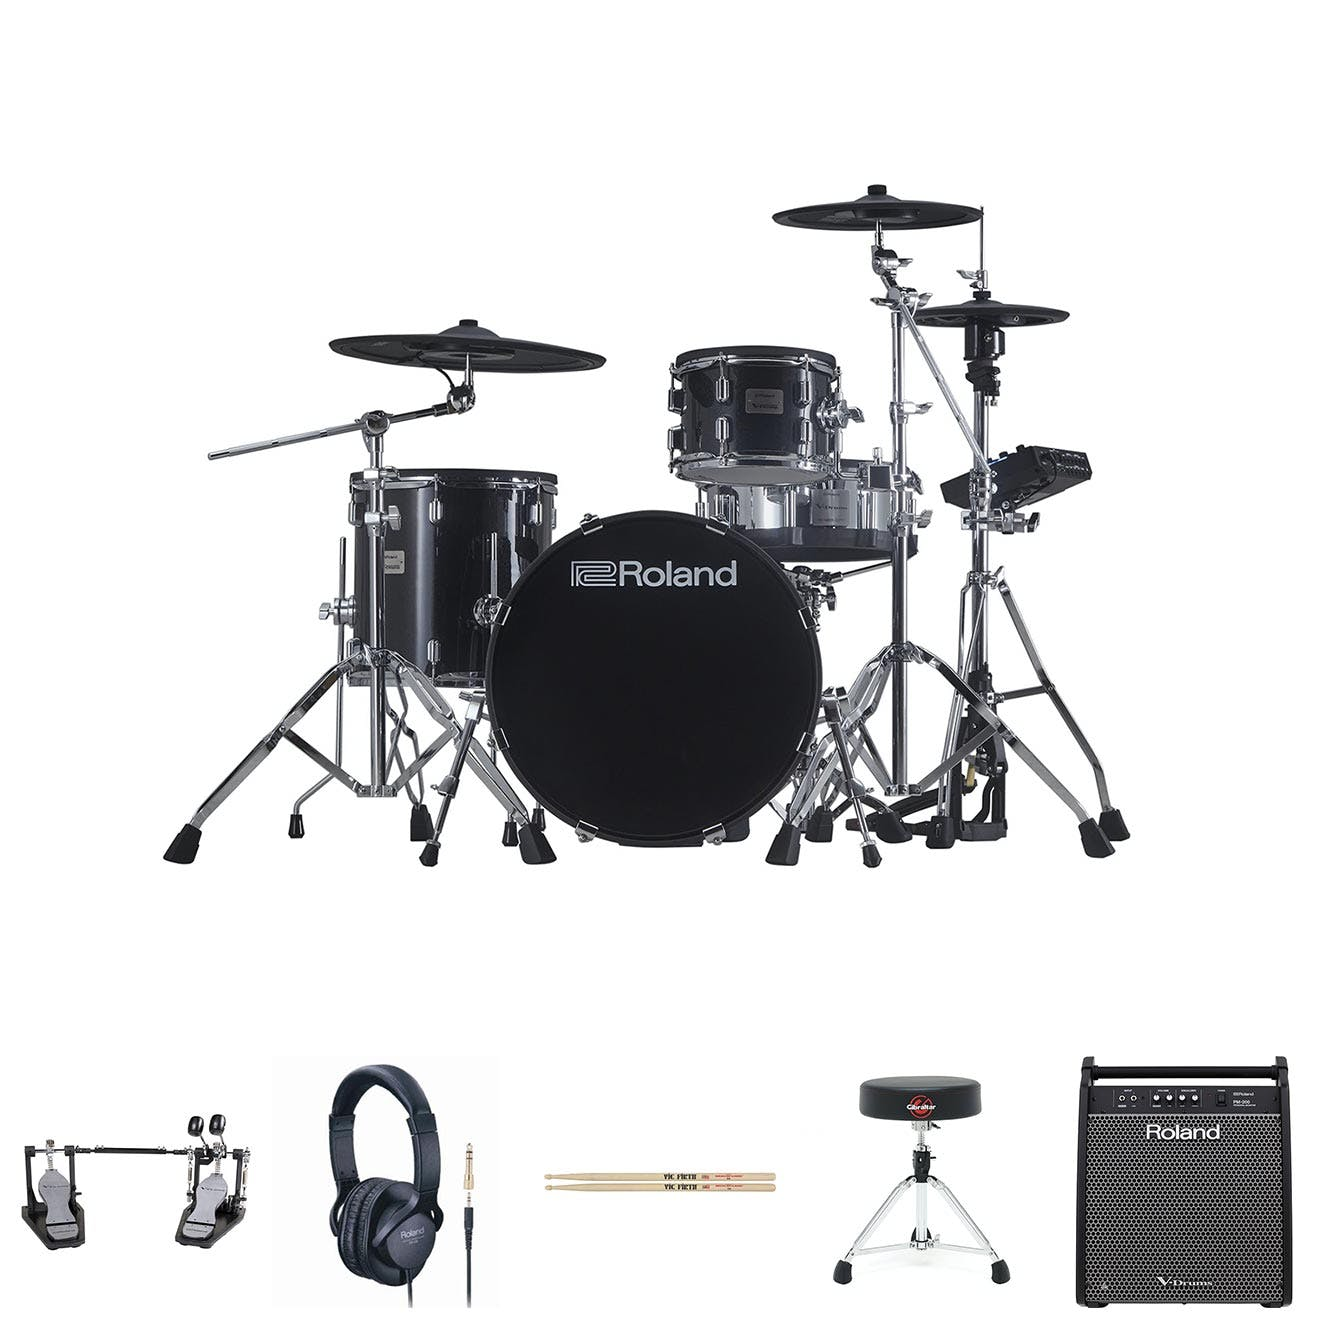 Image for Roland VAD503 w/ PM100, Double Pedal, HH Stand, Snare Stand, Sticks, Stool & Headphones from Andertons Music Co.